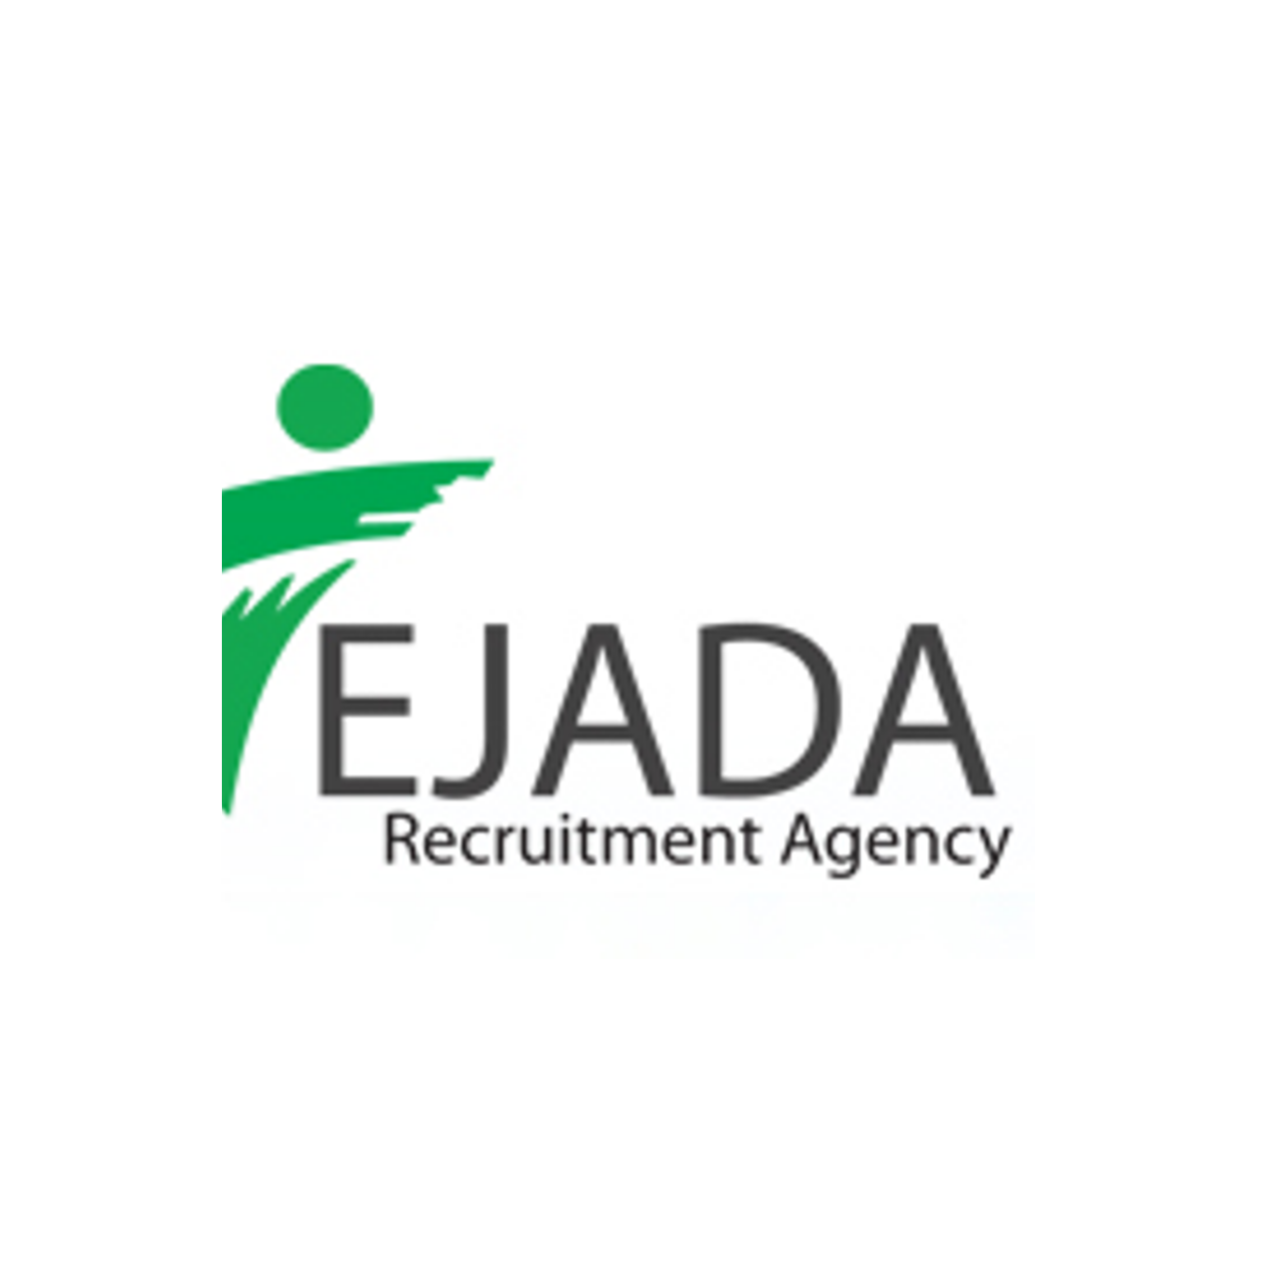 EJADA Recruitment Agency